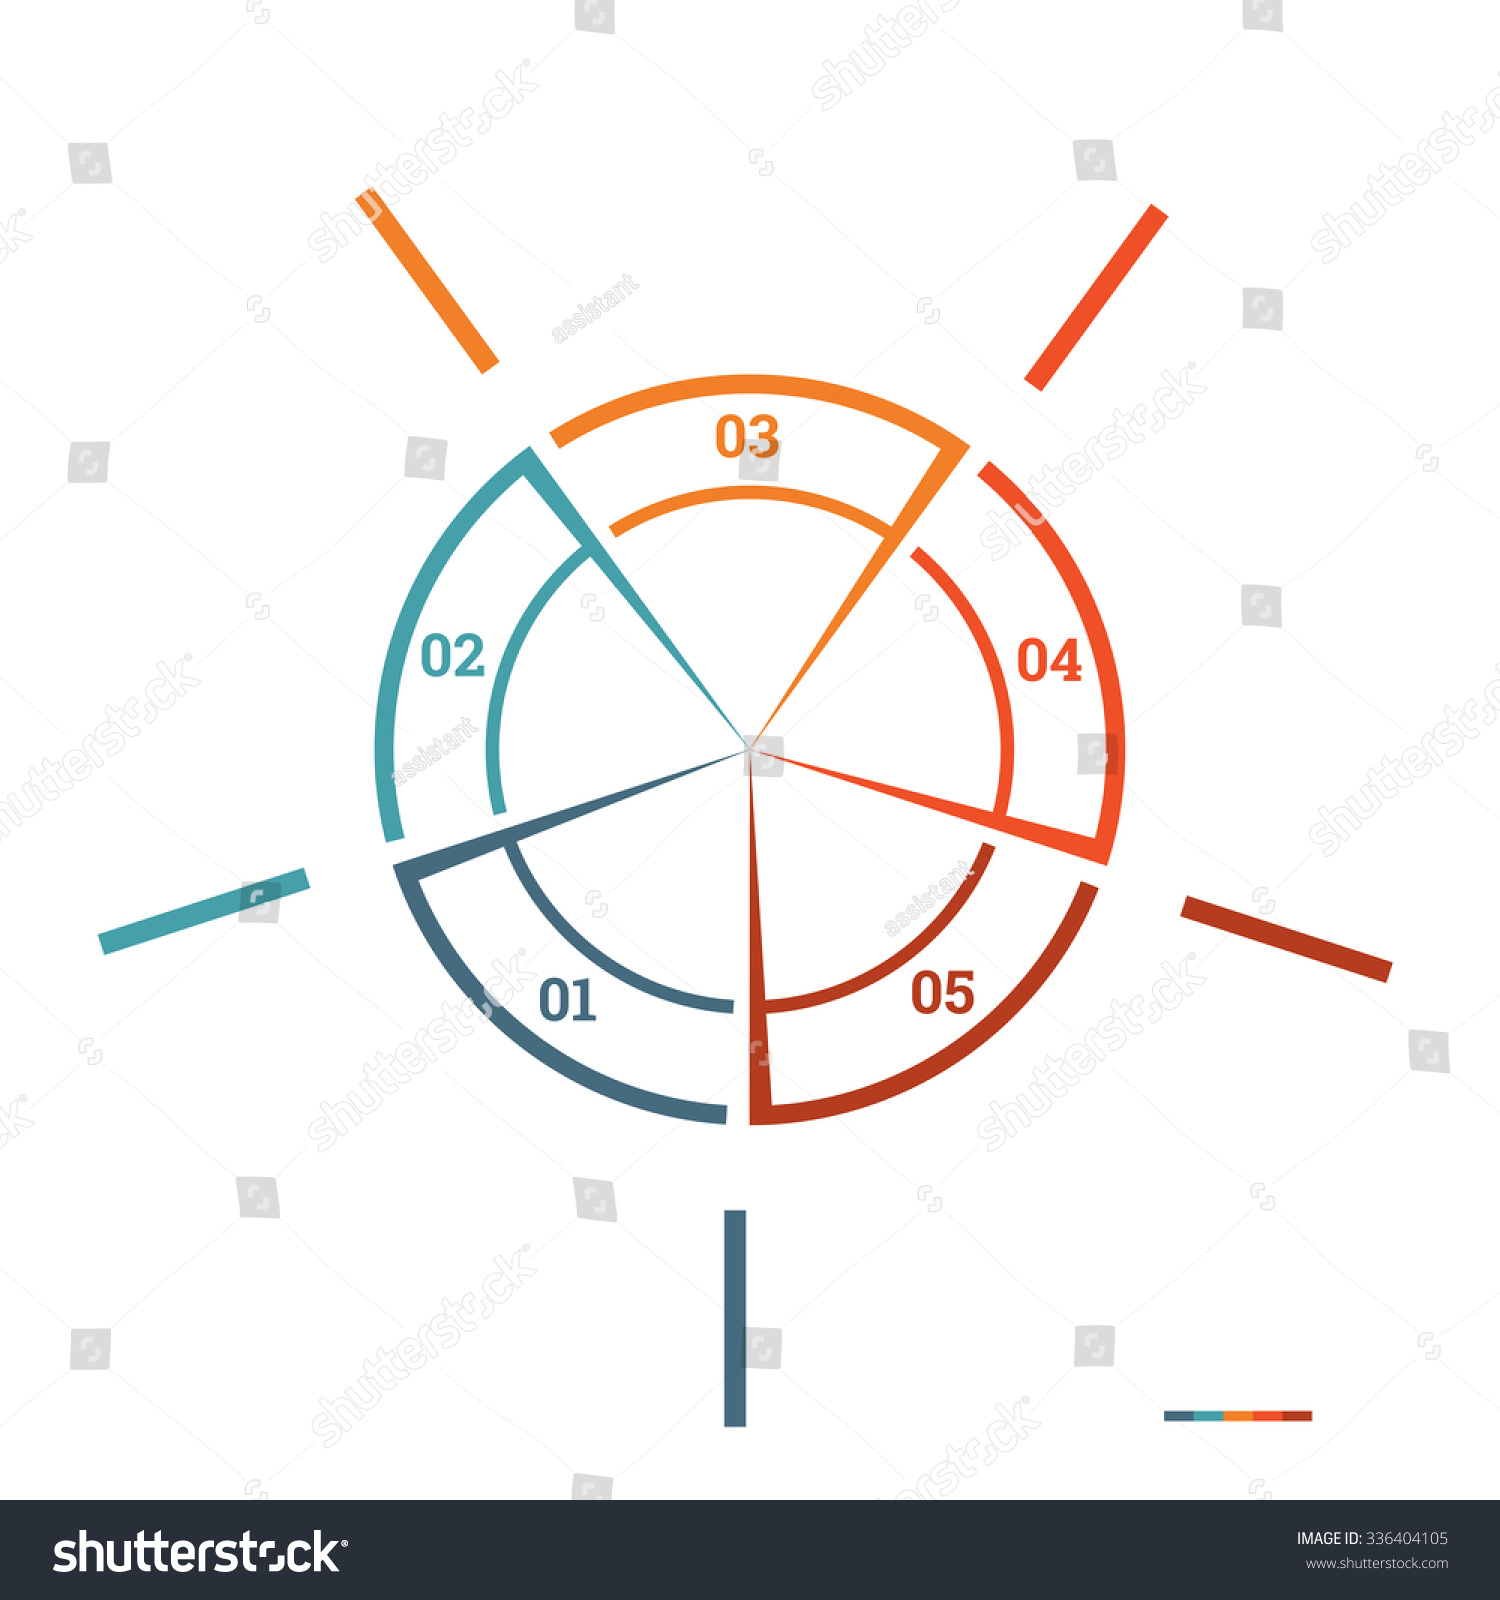 Infographic pie chart template colourful circle stock illustration infographic pie chart template colourful circle from lines with text areas on 7 positions for workflow nvjuhfo Choice Image